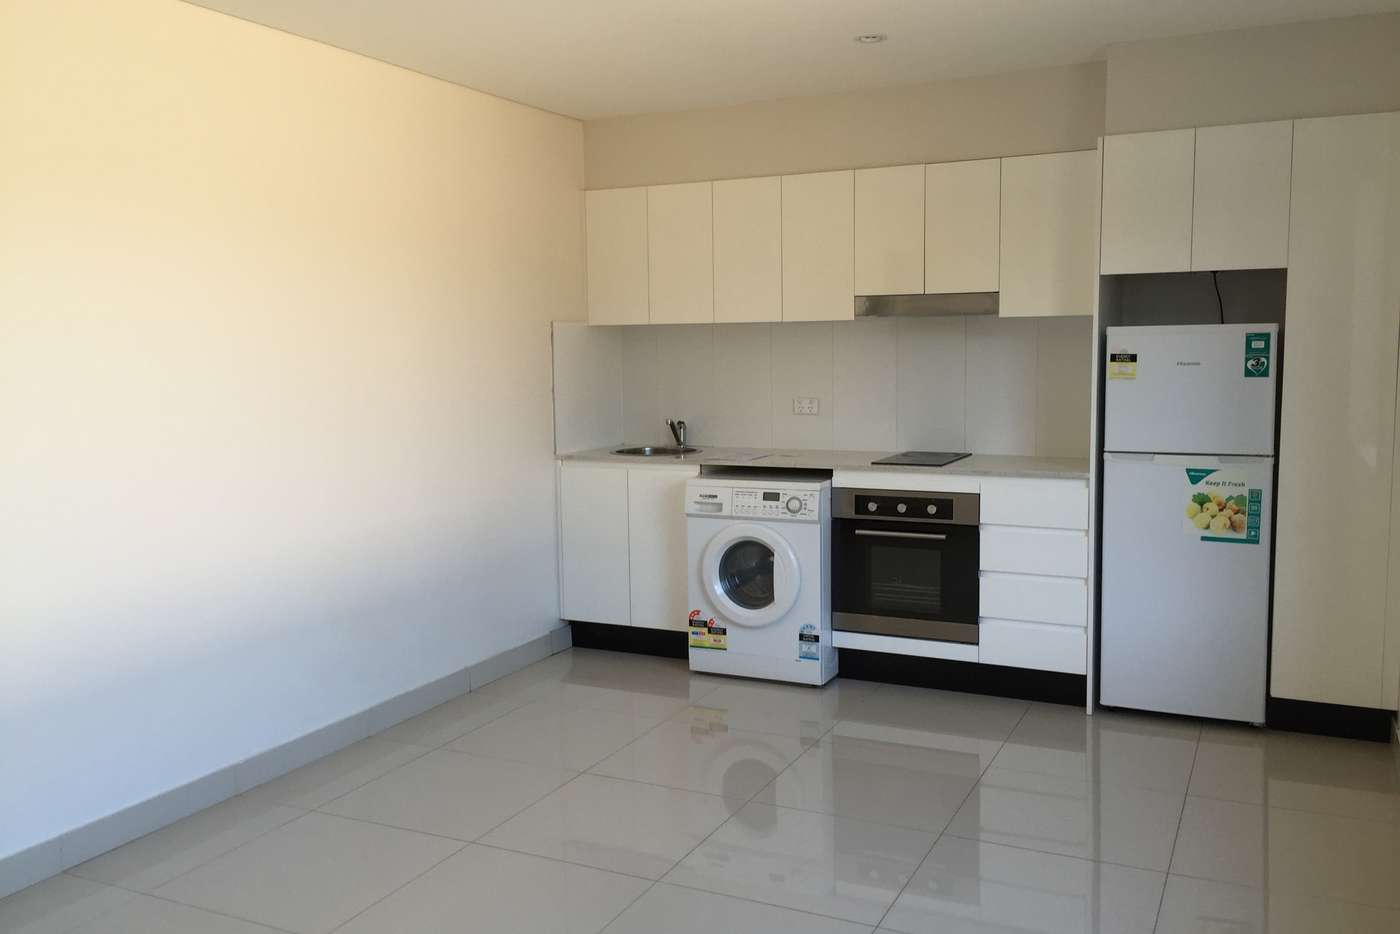 Main view of Homely studio listing, 1A/79 Hassall Street, Parramatta NSW 2150